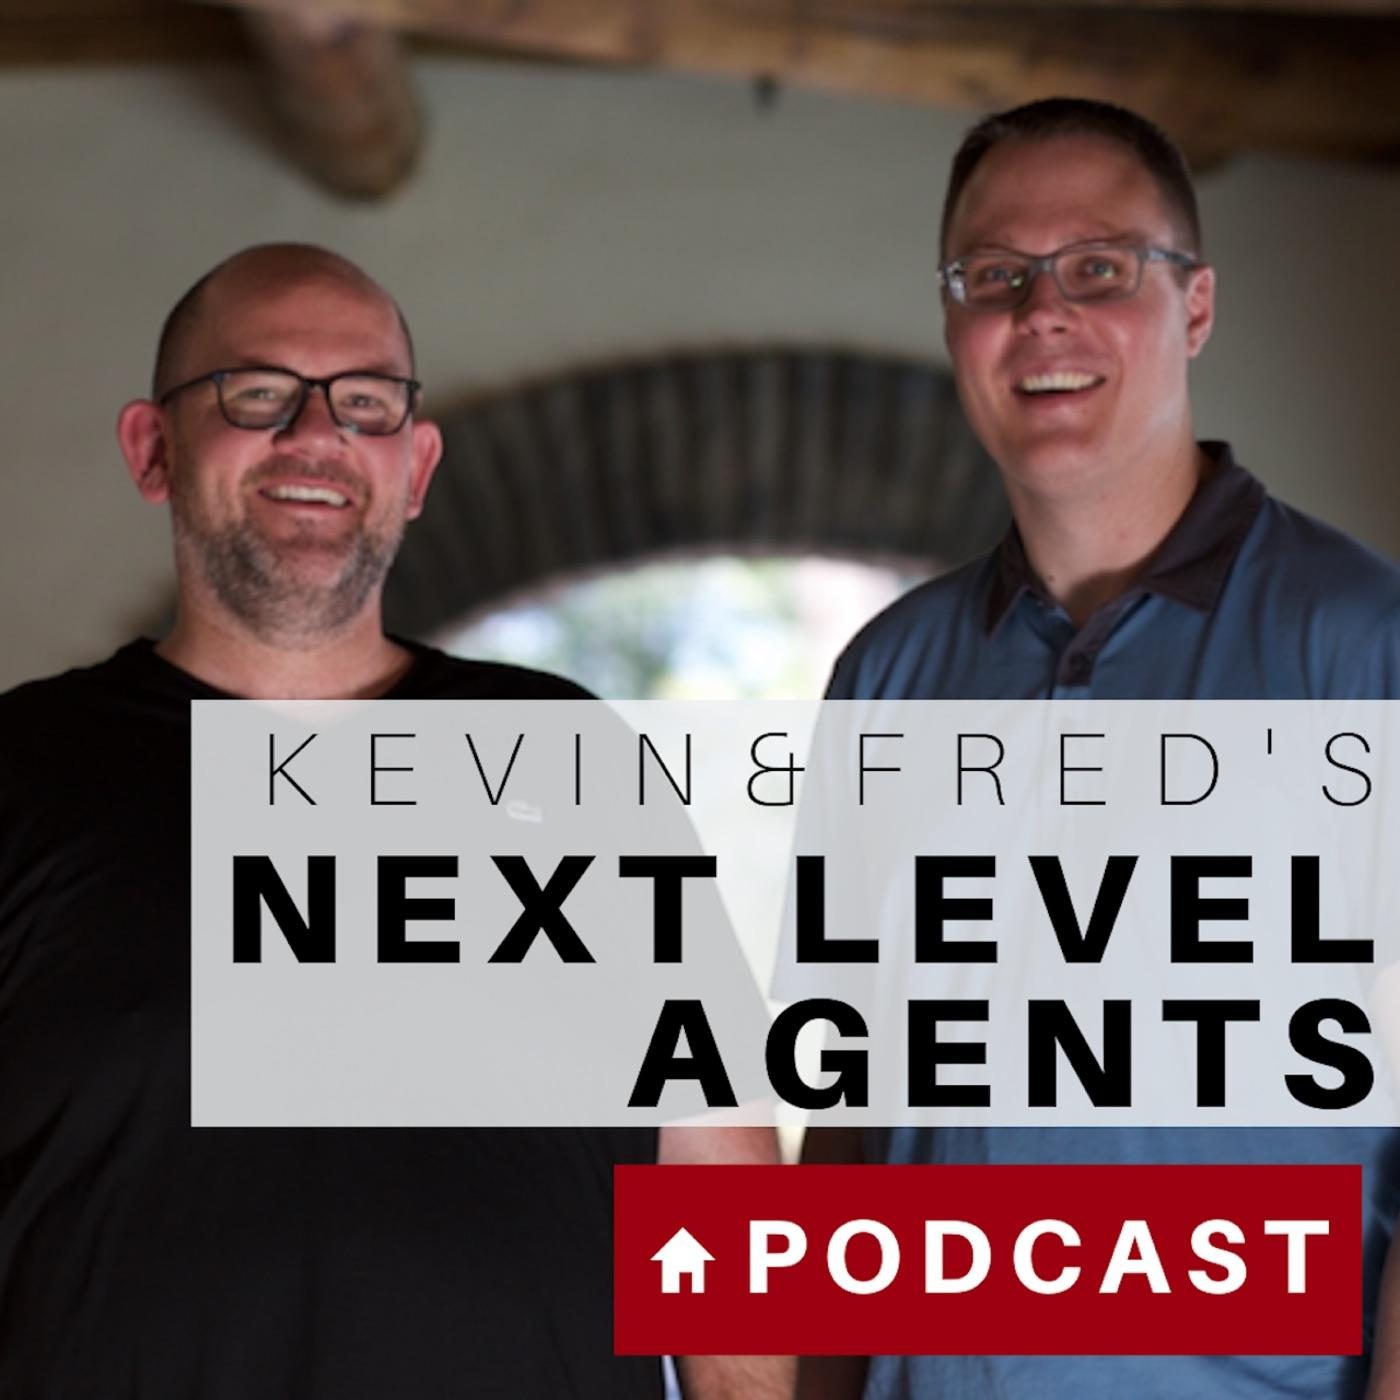 Best Business Podcasts 2020 Kevin & Fred's Next Level Podcast: Quick Tips for Realtors and